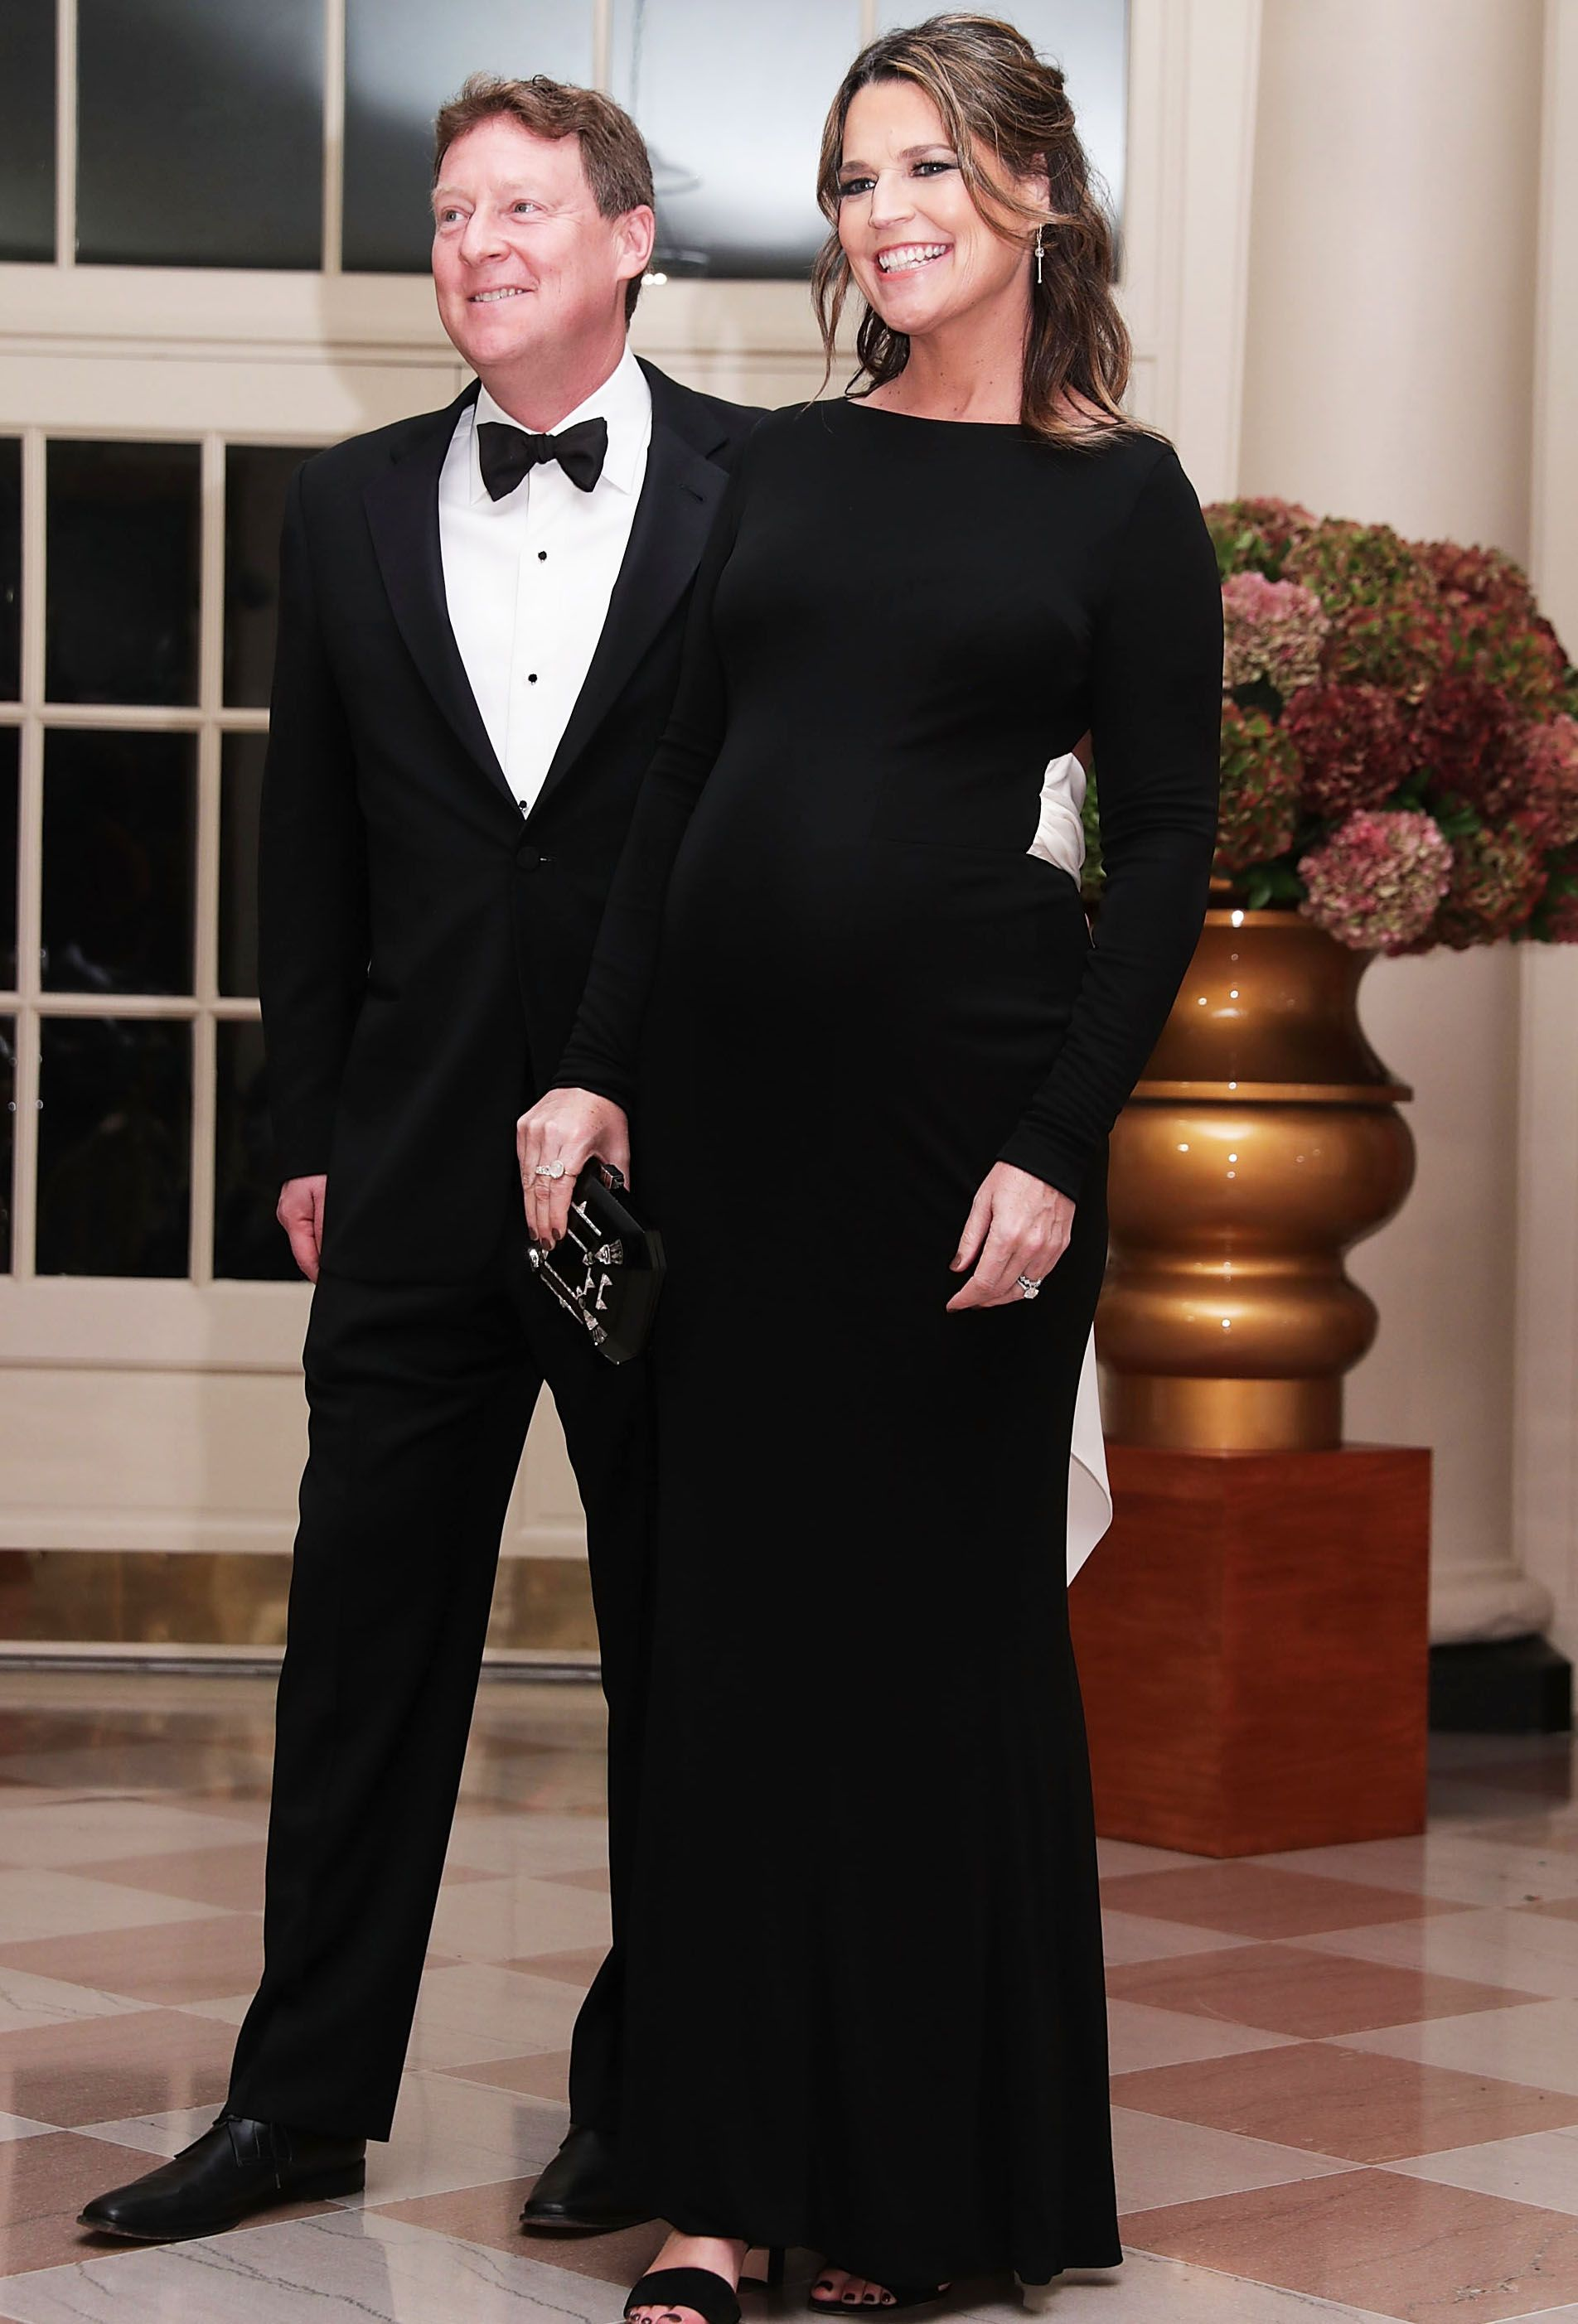 Pregnant Savannah Guthrie Shows Off Her Baby Bump On Instagram